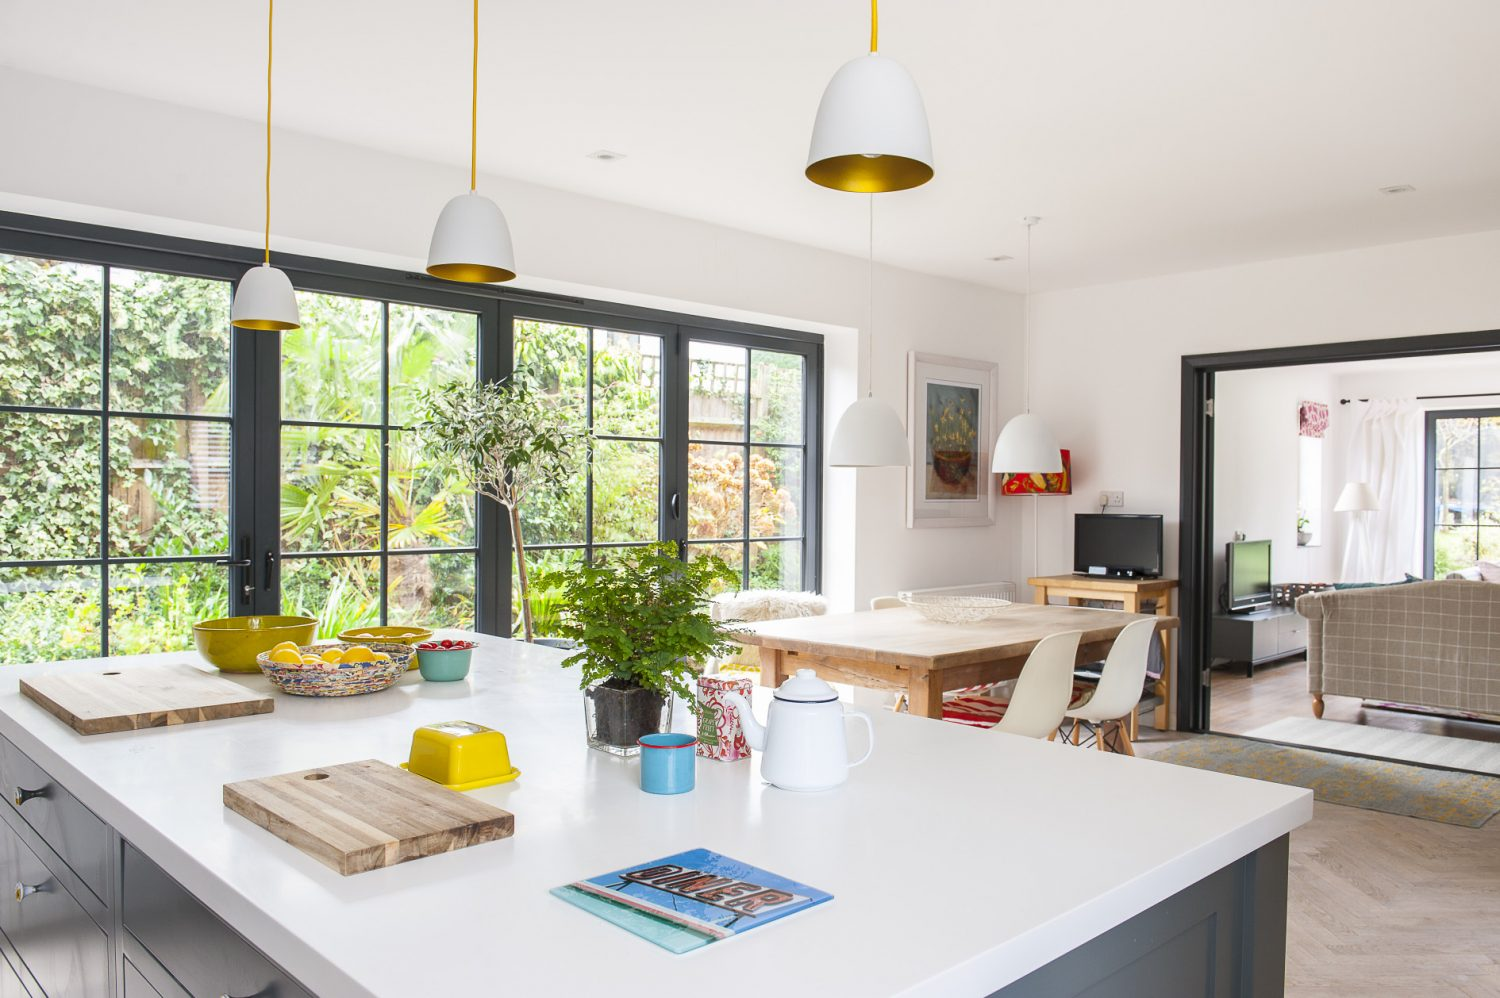 The kitchen space was once three rooms and a corridor, but is now open-plan light and airy